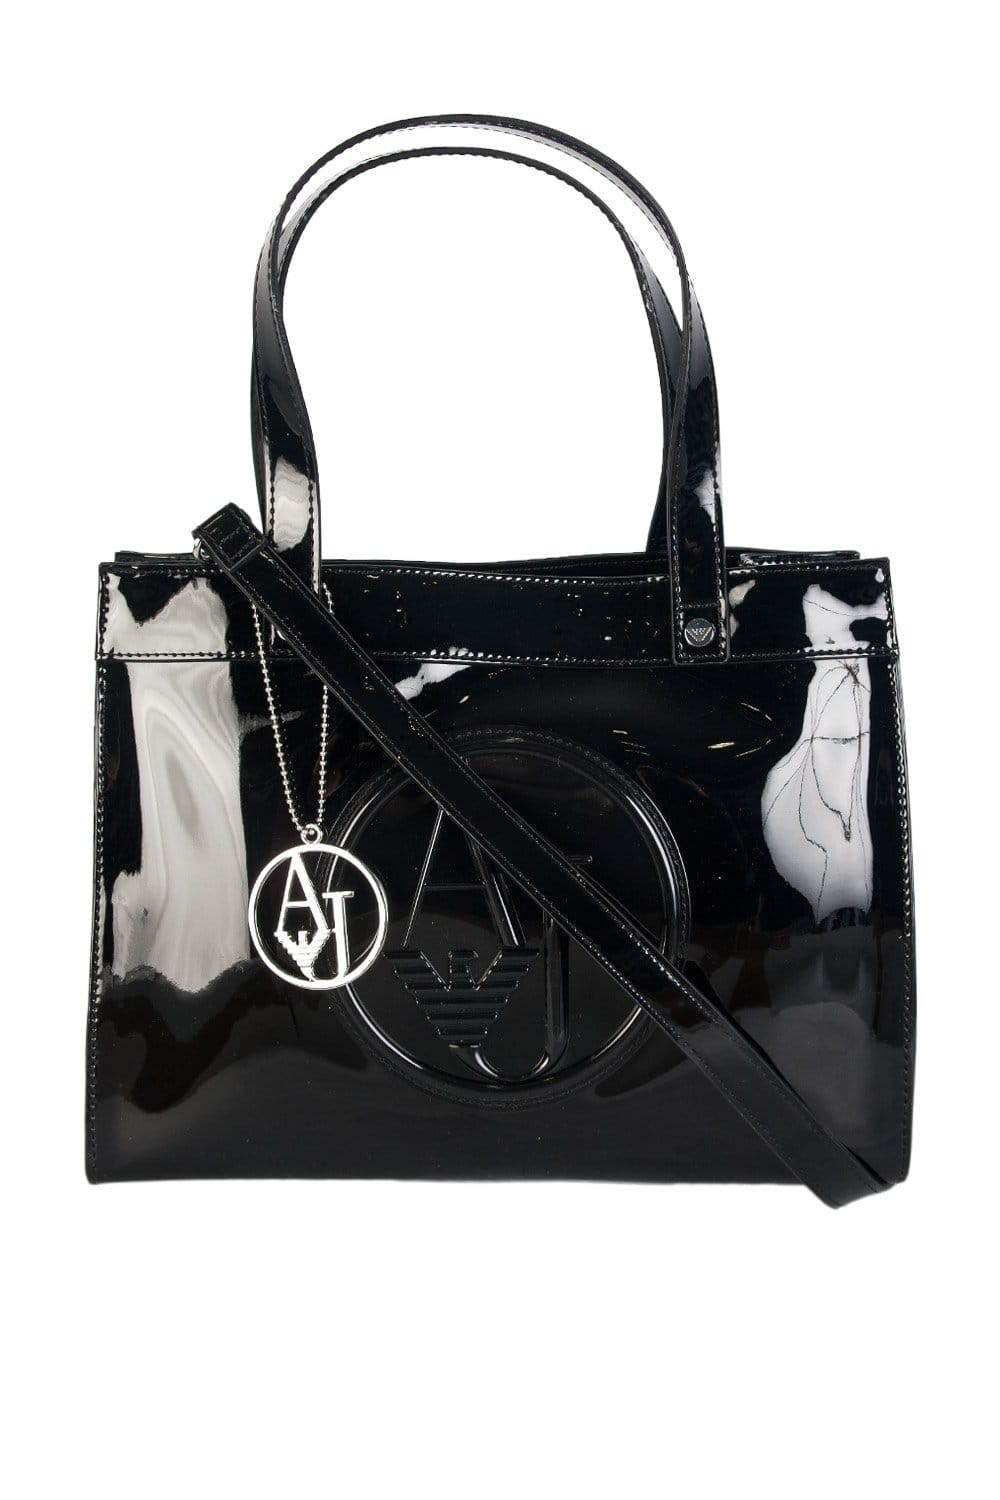 Shop patent leather handbags at gehedoruqigimate.ml Free Shipping and Free Returns for Loyallists or Any Order Over $!